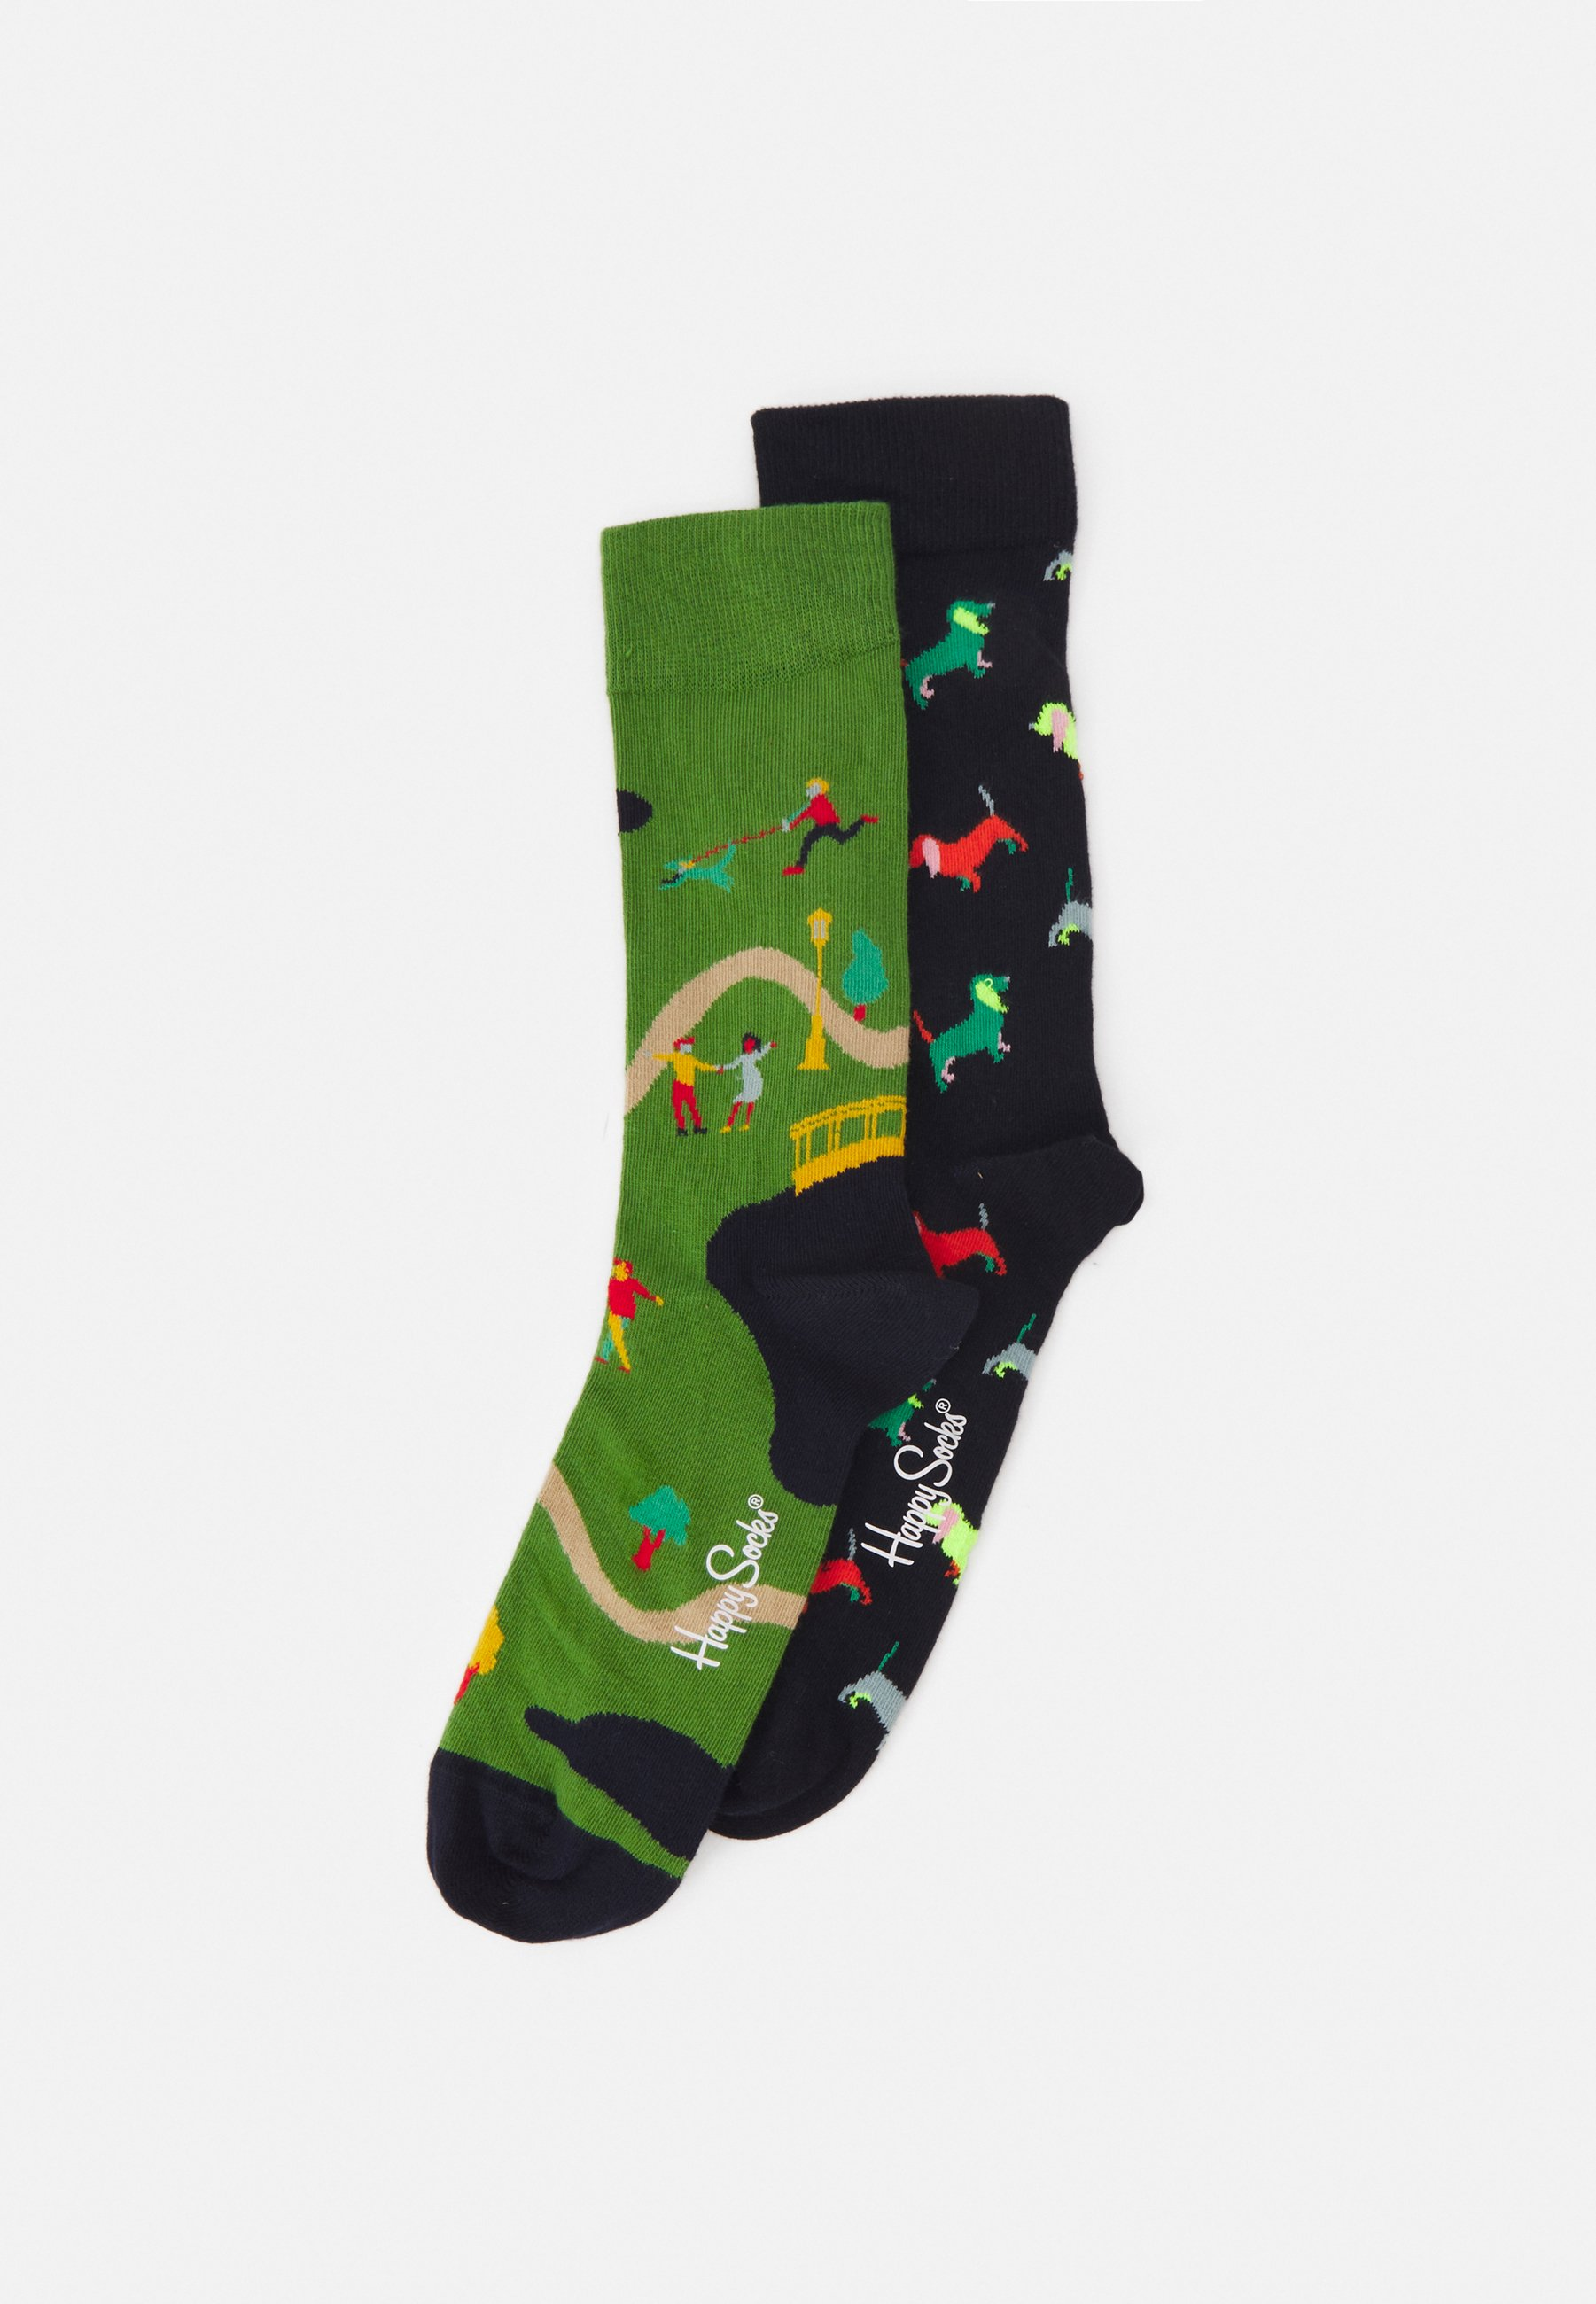 Donna WALK IN THE PARK PUPPY LOVE 2 PACK UNISEX - Calze